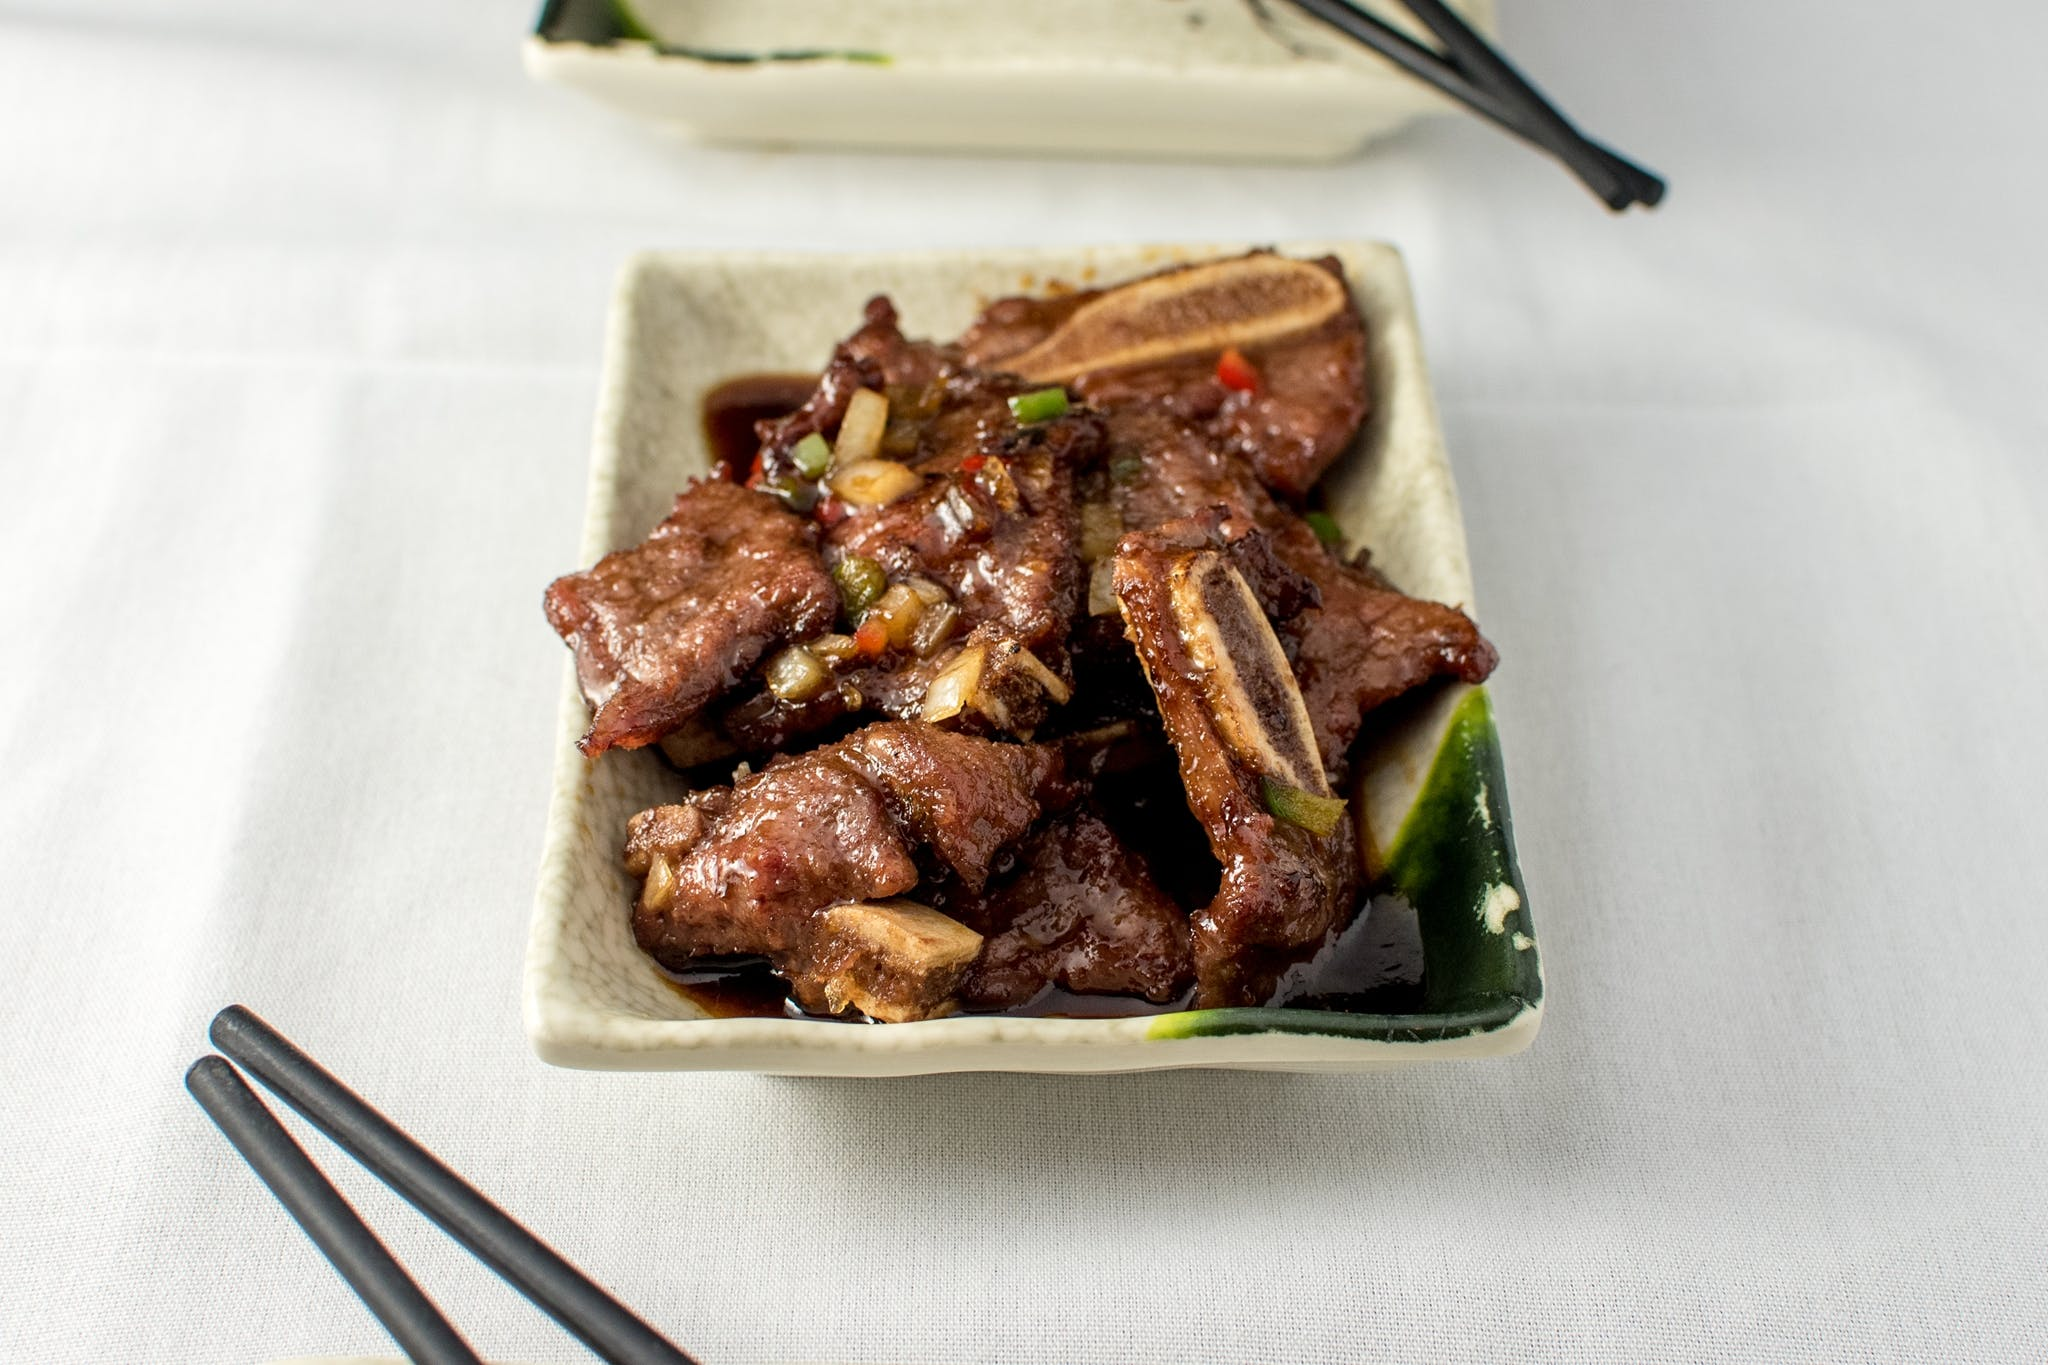 16. Short Rib with Honey Sauce (GF) from Nani Restaurant in Madison, WI